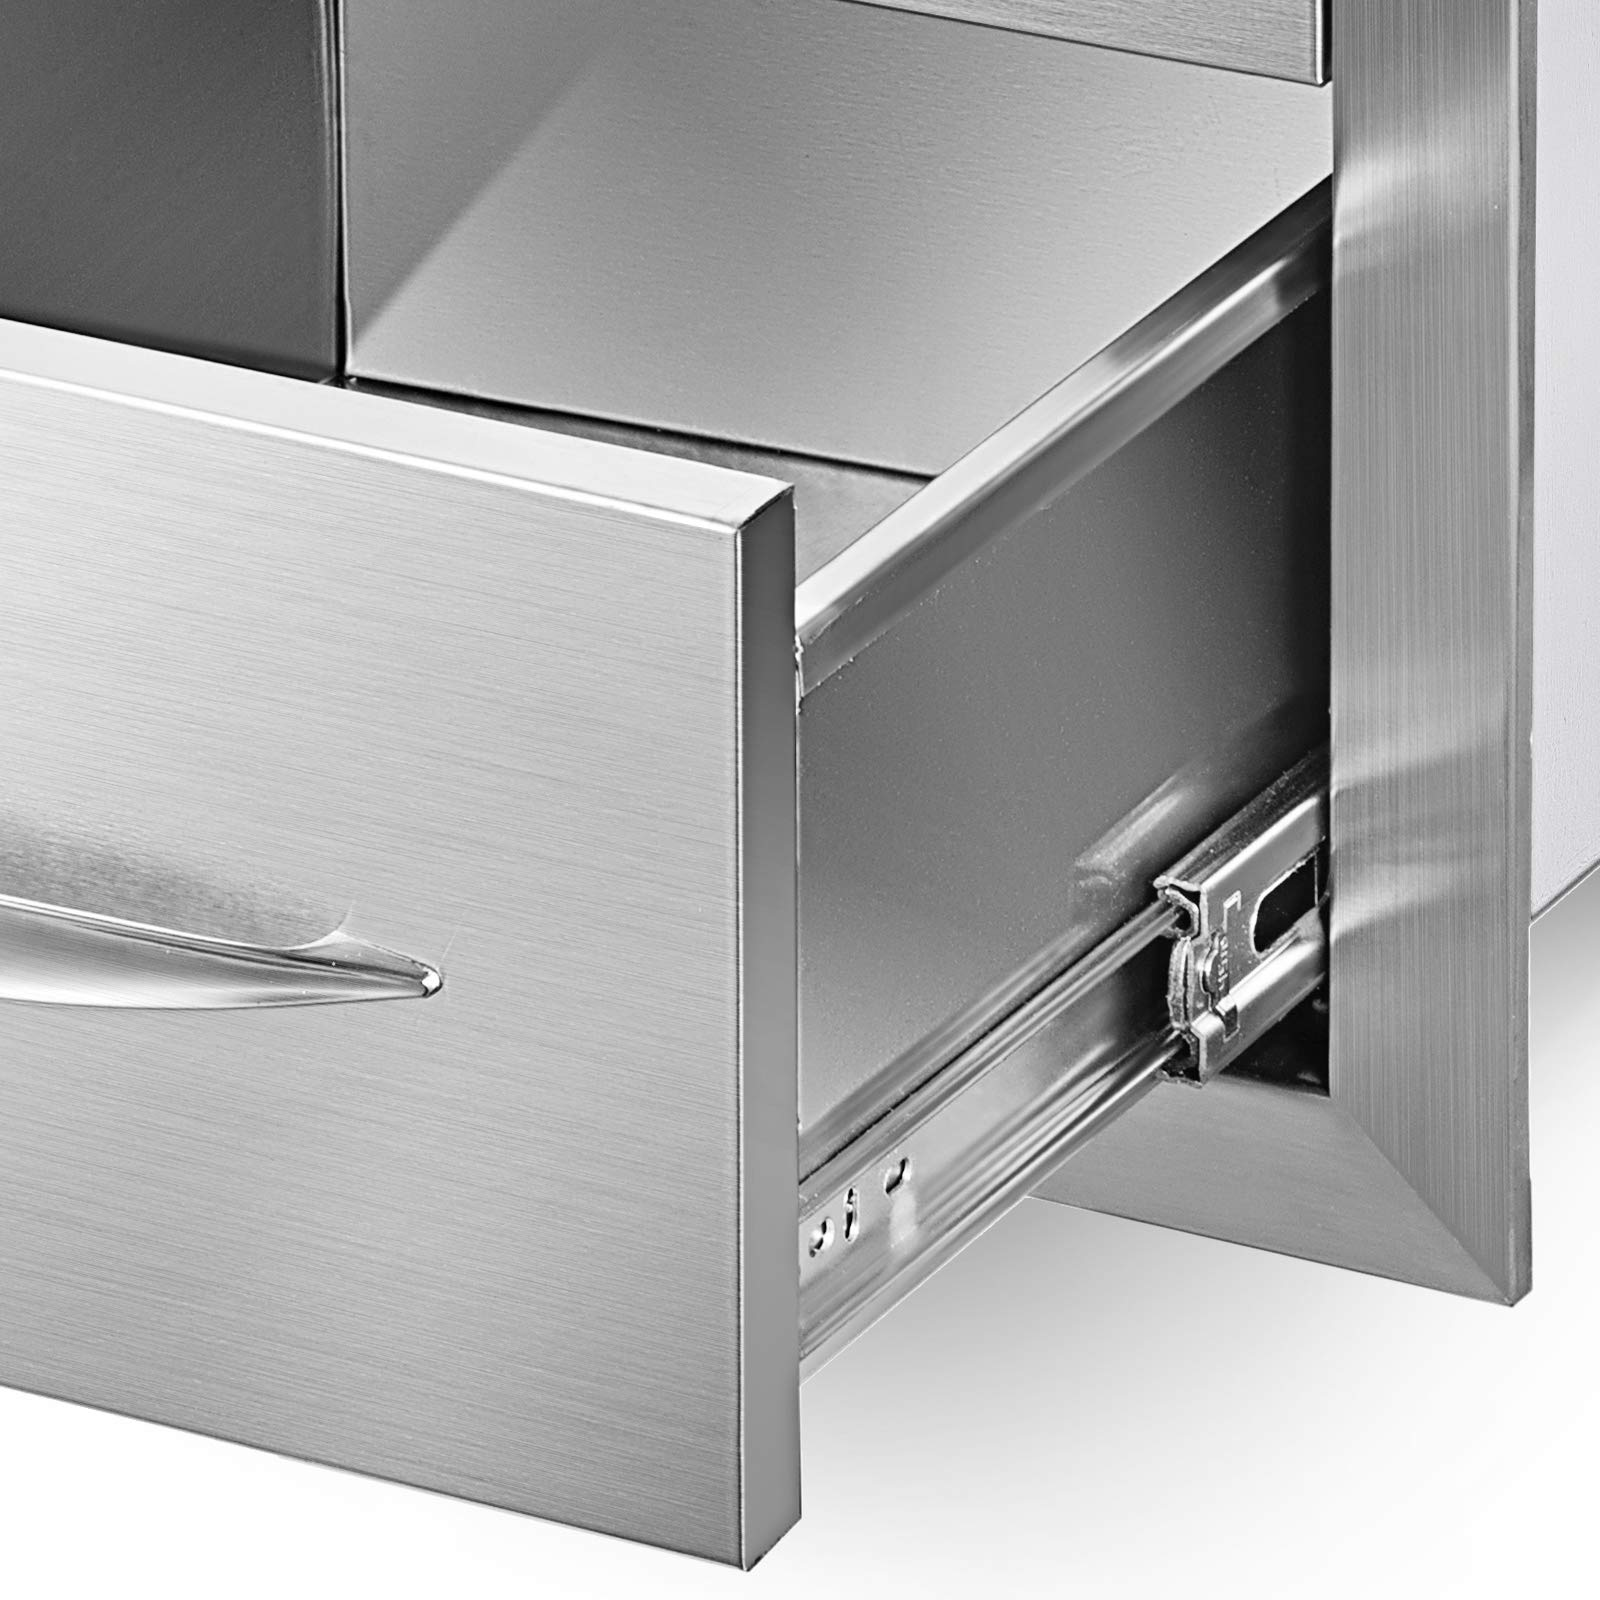 Mophorn 15''x21'' Outdoor Kitchen Drawer Stainless Steel Triple Access Drawer BBQ Storage with Chrome Handle Flush Mount Sliver by Mophorn (Image #7)